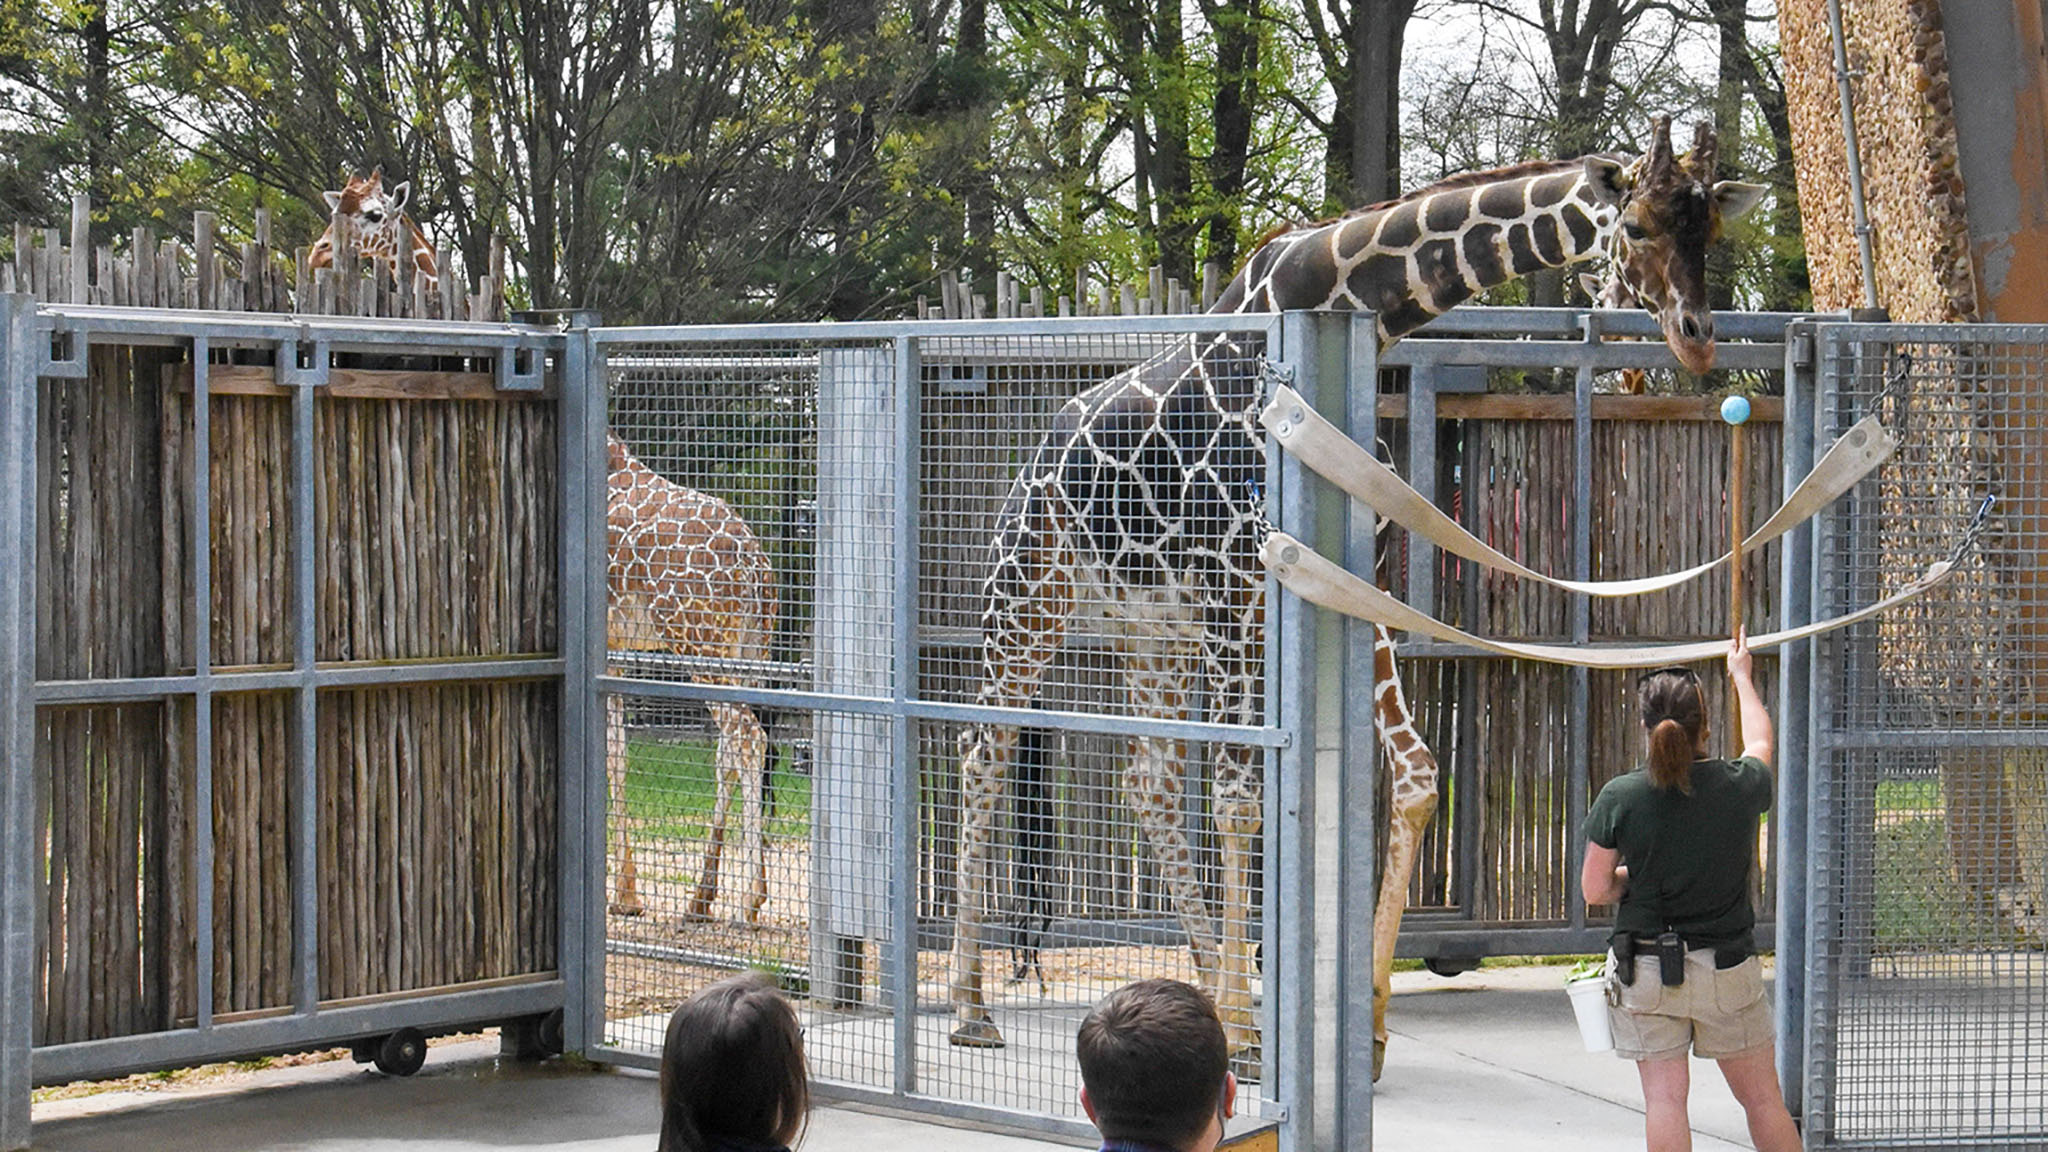 Zoo keeper training giraffe with guests watching.